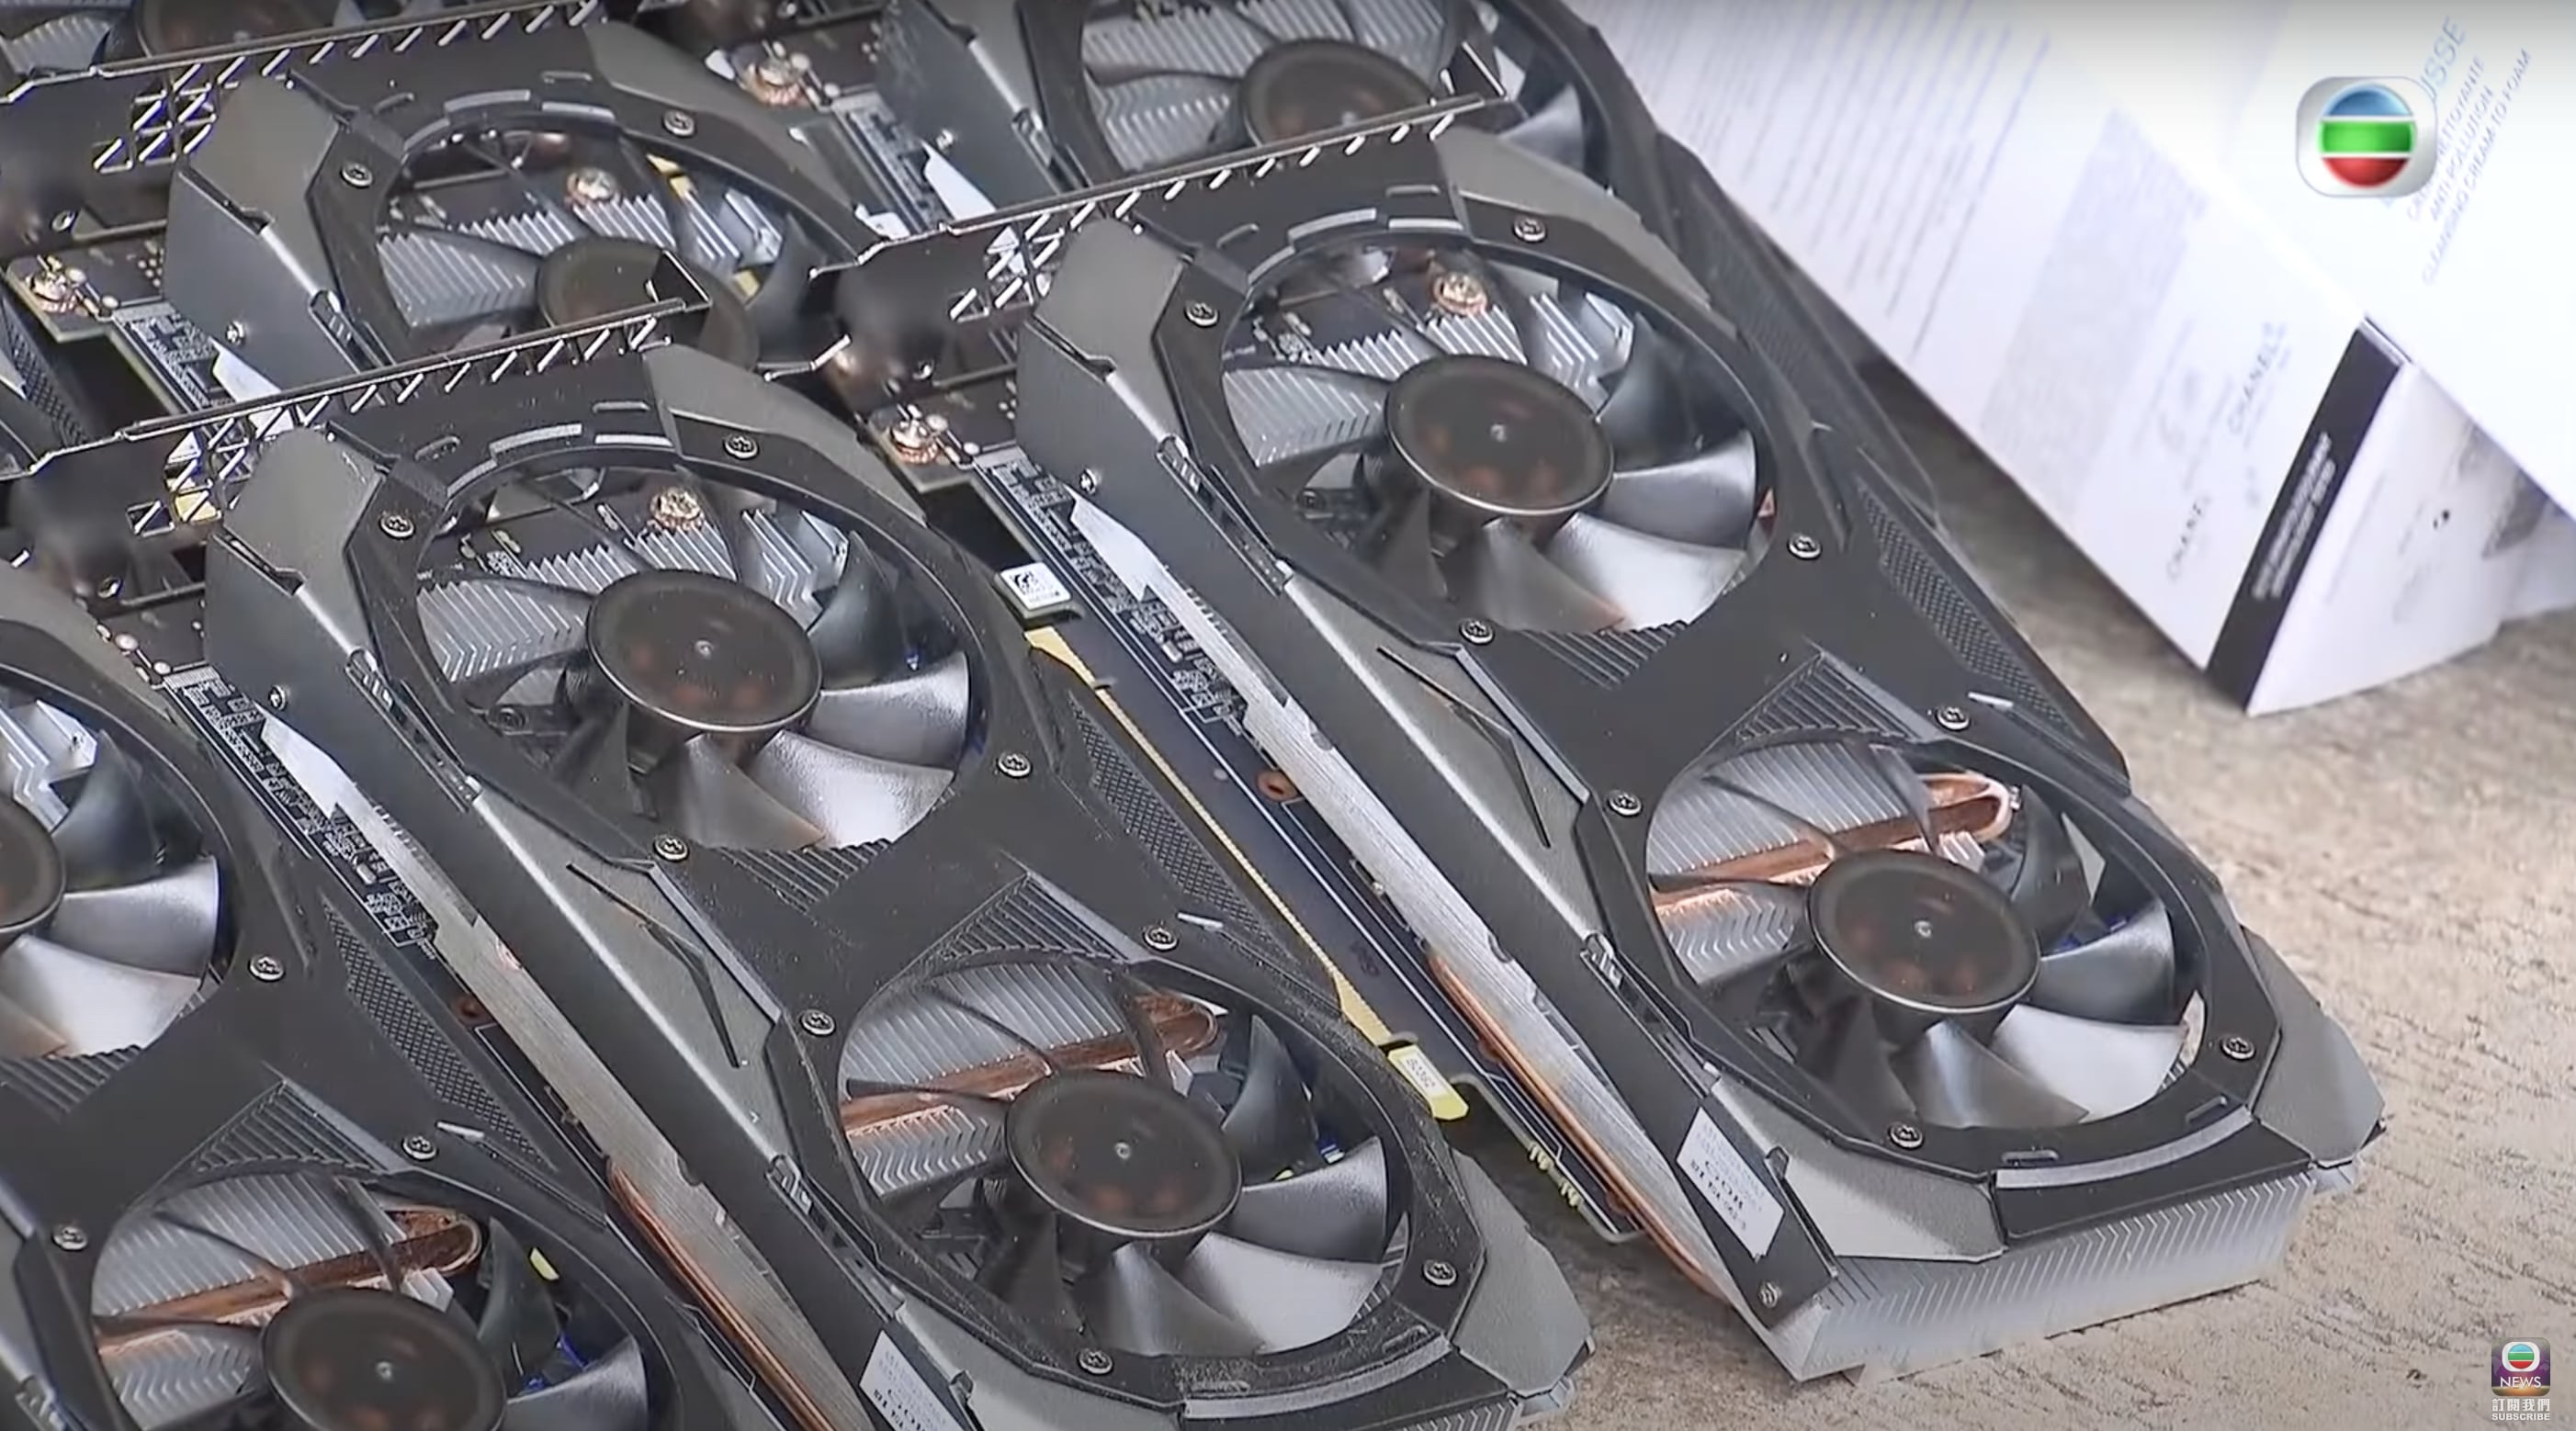 Smuggled Nvidia GPUs recovered after dramatic, high-speed boat chase